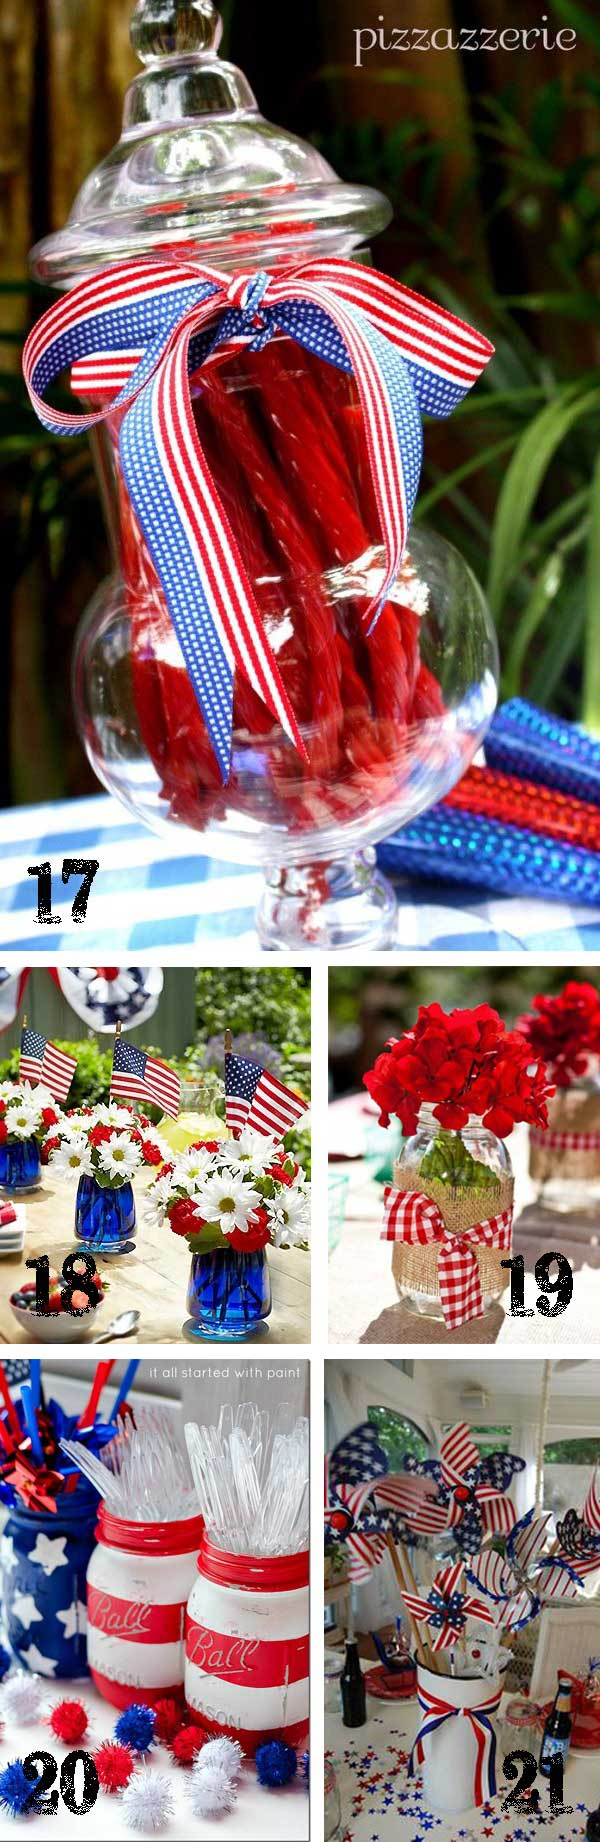 July 4th Tablescapes TidbitsTwine 25 Patriotic Projects   4th of July Party Roundup